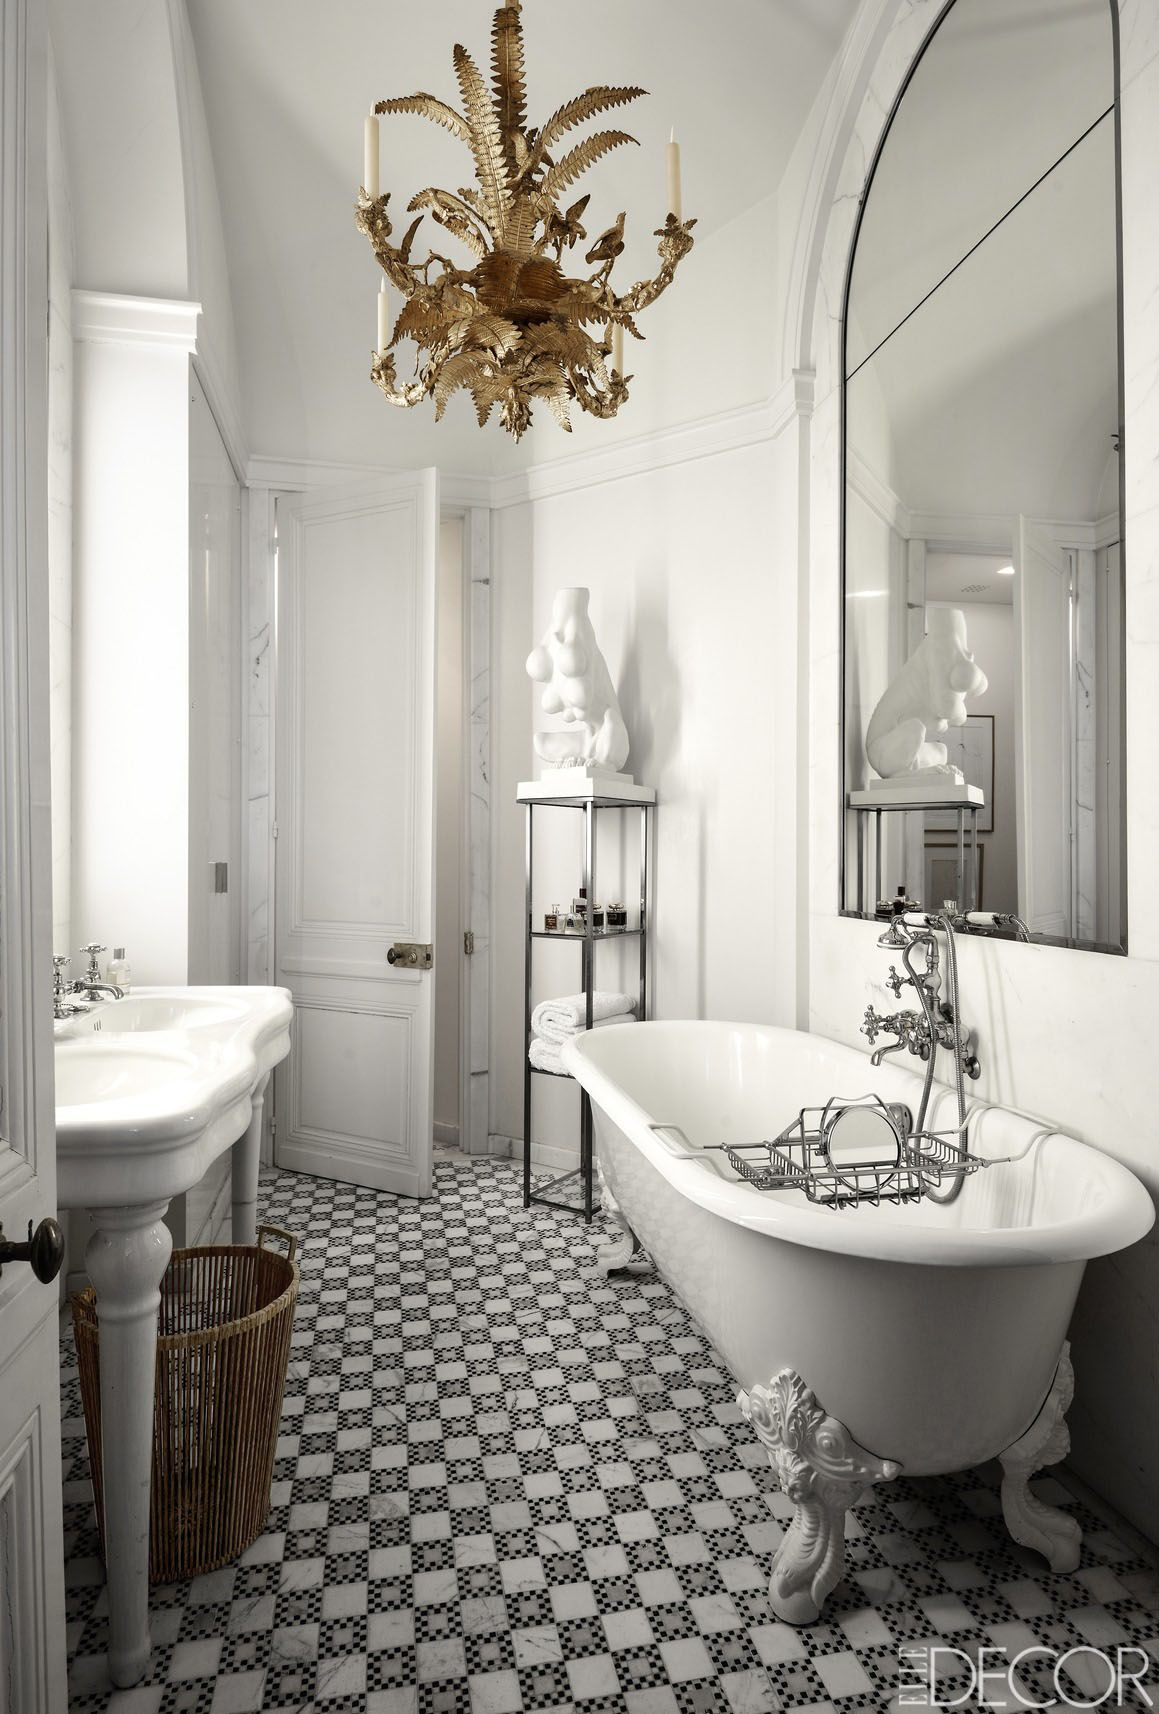 Bathroom Seen Photos Of 75 Of The Most Beautiful Designer Bathrooms We 39 Ve Ever